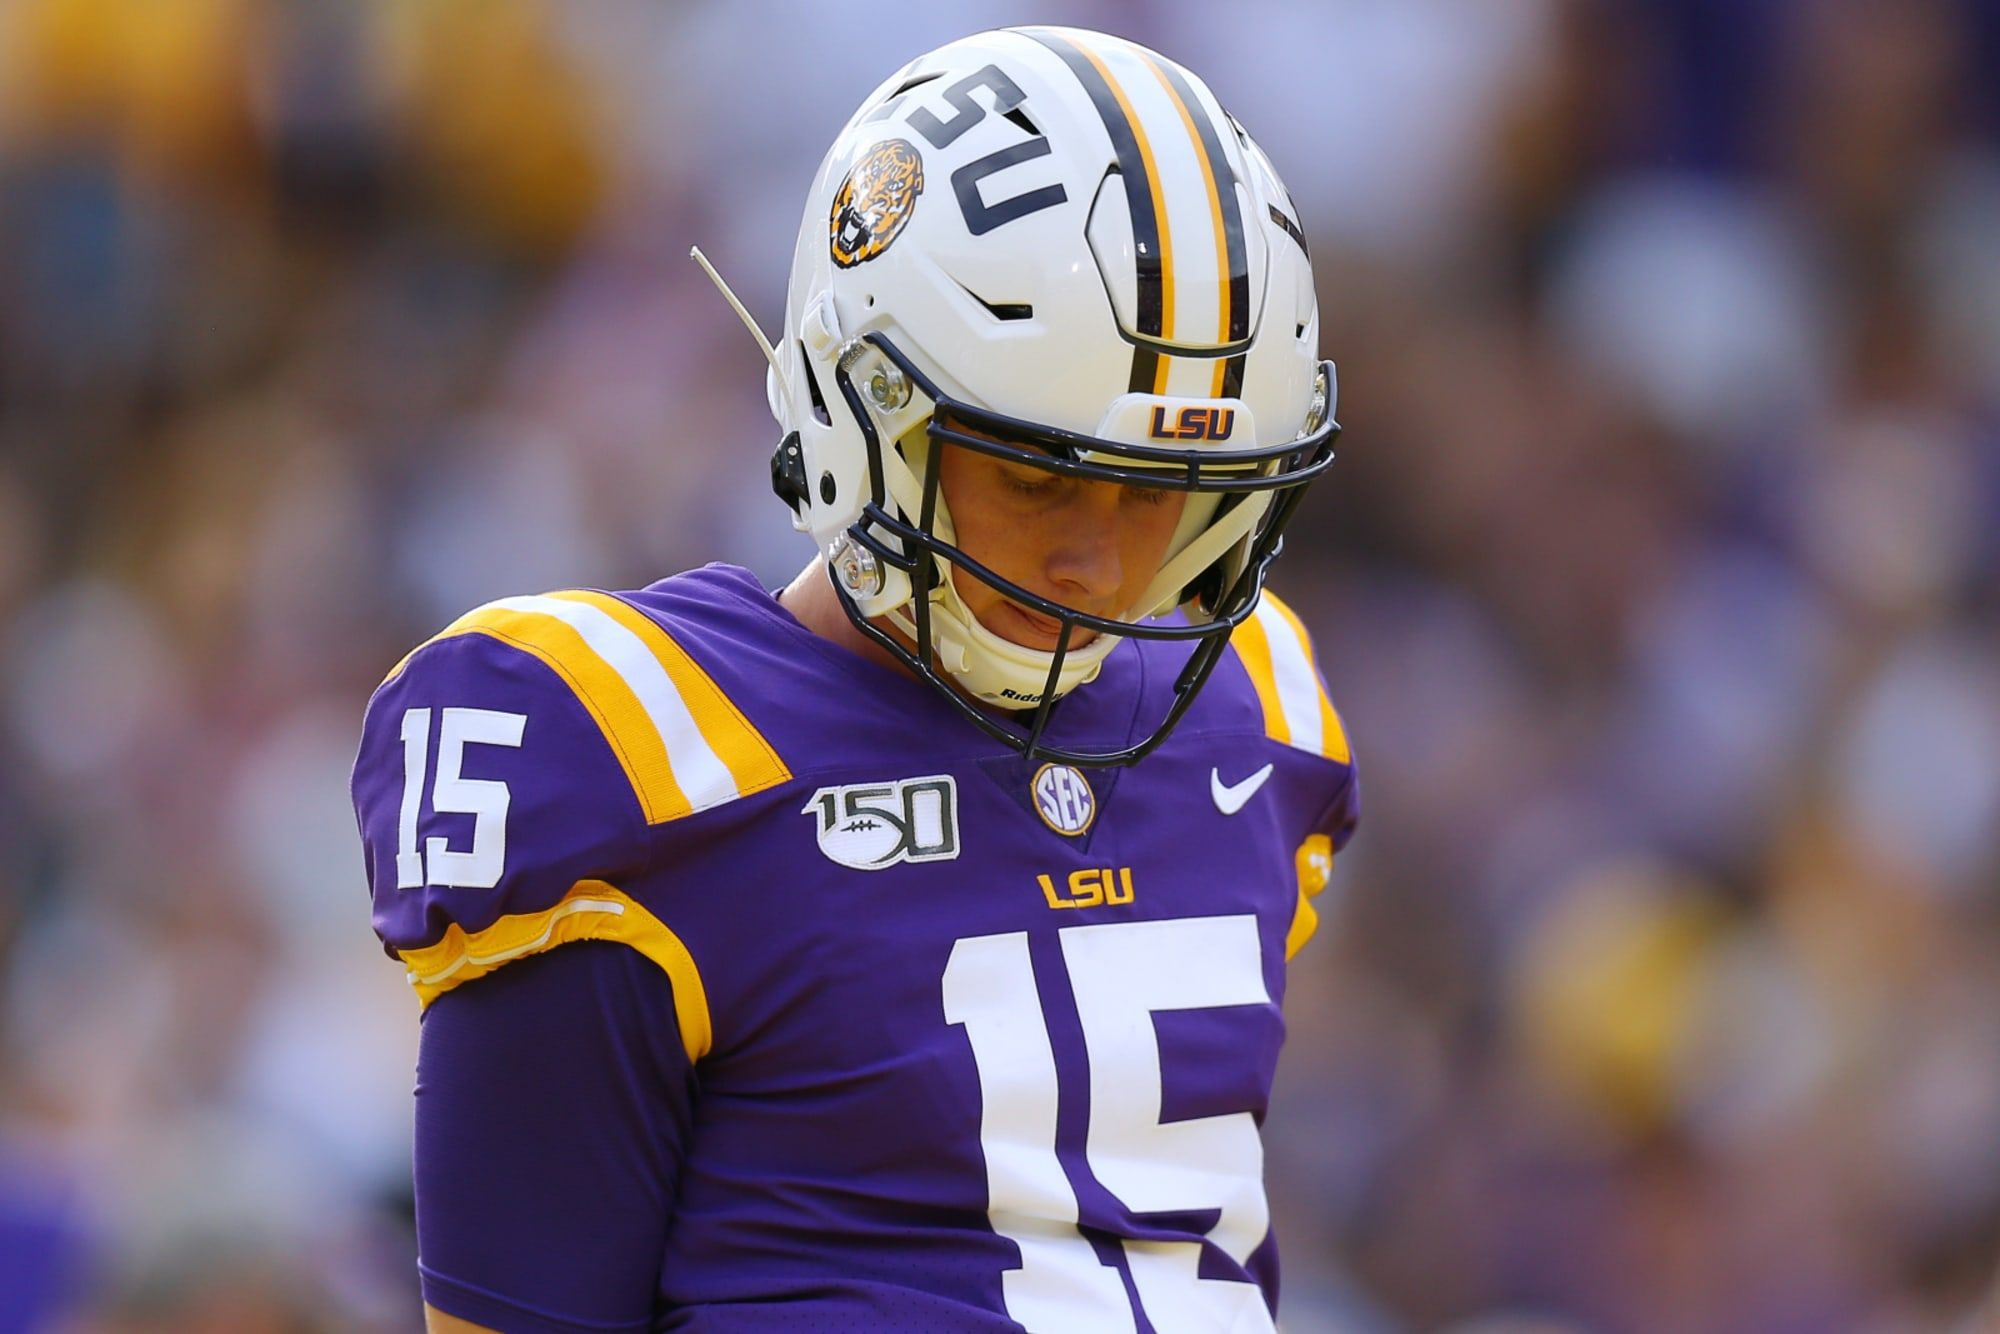 Lsu Football S Myles Brennan Will Carry The Torch From Joe Burrow For The Tigers In 2020 Lsu Football Quarterback Myles Brennan Has In 2020 Lsu Football Lsu Football